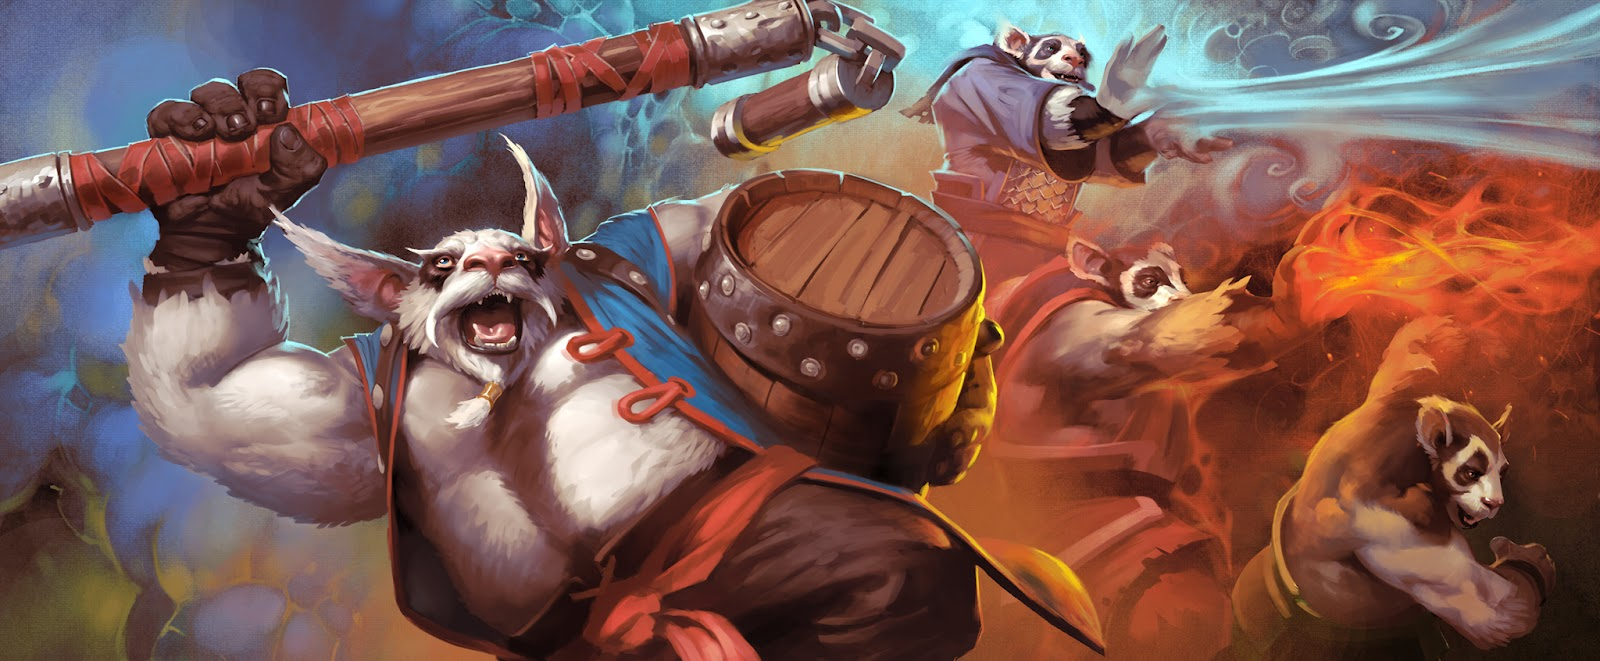 DoubleClickGaming: Dota 2 Update - Brewmaster Released in